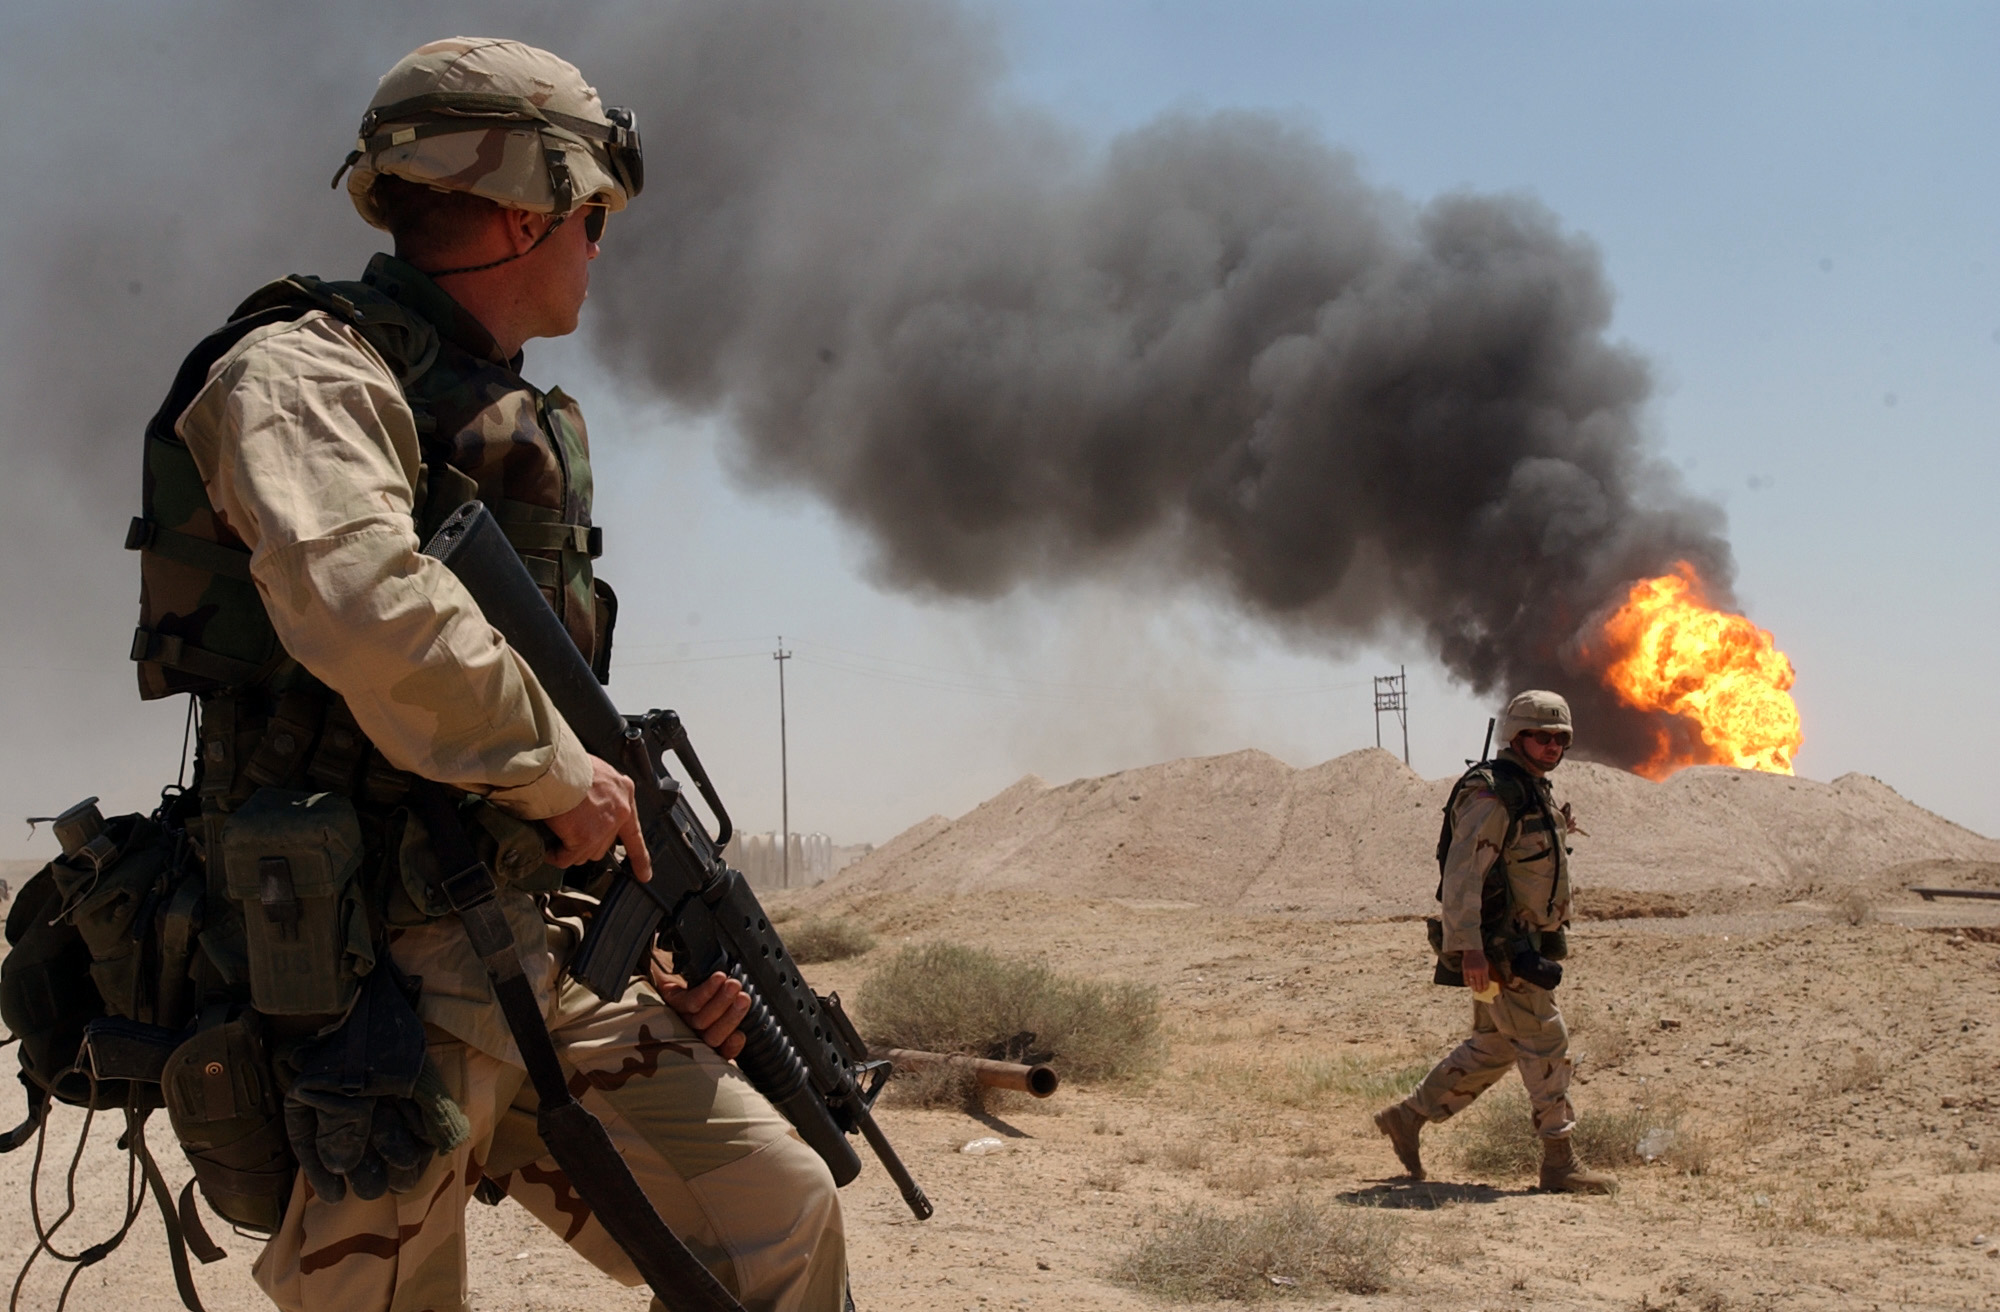 030402-N-5362A-004 Southern, Iraq (Apr. 2, 2003) -- U.S. Army Sgt. Mark Phiffer stands guard duty near a burning oil well in the Rumaylah Oil Fields in Southern Iraq.  Coalition forces have successfully secured the southern oil fields for the economic future of the Iraqi people and are in the process of extinguishing the burning wells that were set ablaze in the early stages of Operation Iraqi Freedom.  Operation Iraqi Freedom is the multi-national coalition effort to liberate the Iraqi people, eliminate Iraq's weapons of mass destruction and end the regime of Saddam Hussein.  U.S. Navy photo by Photographer's Mate 1st Class Arlo K. Abrahamson.  (RELEASED)